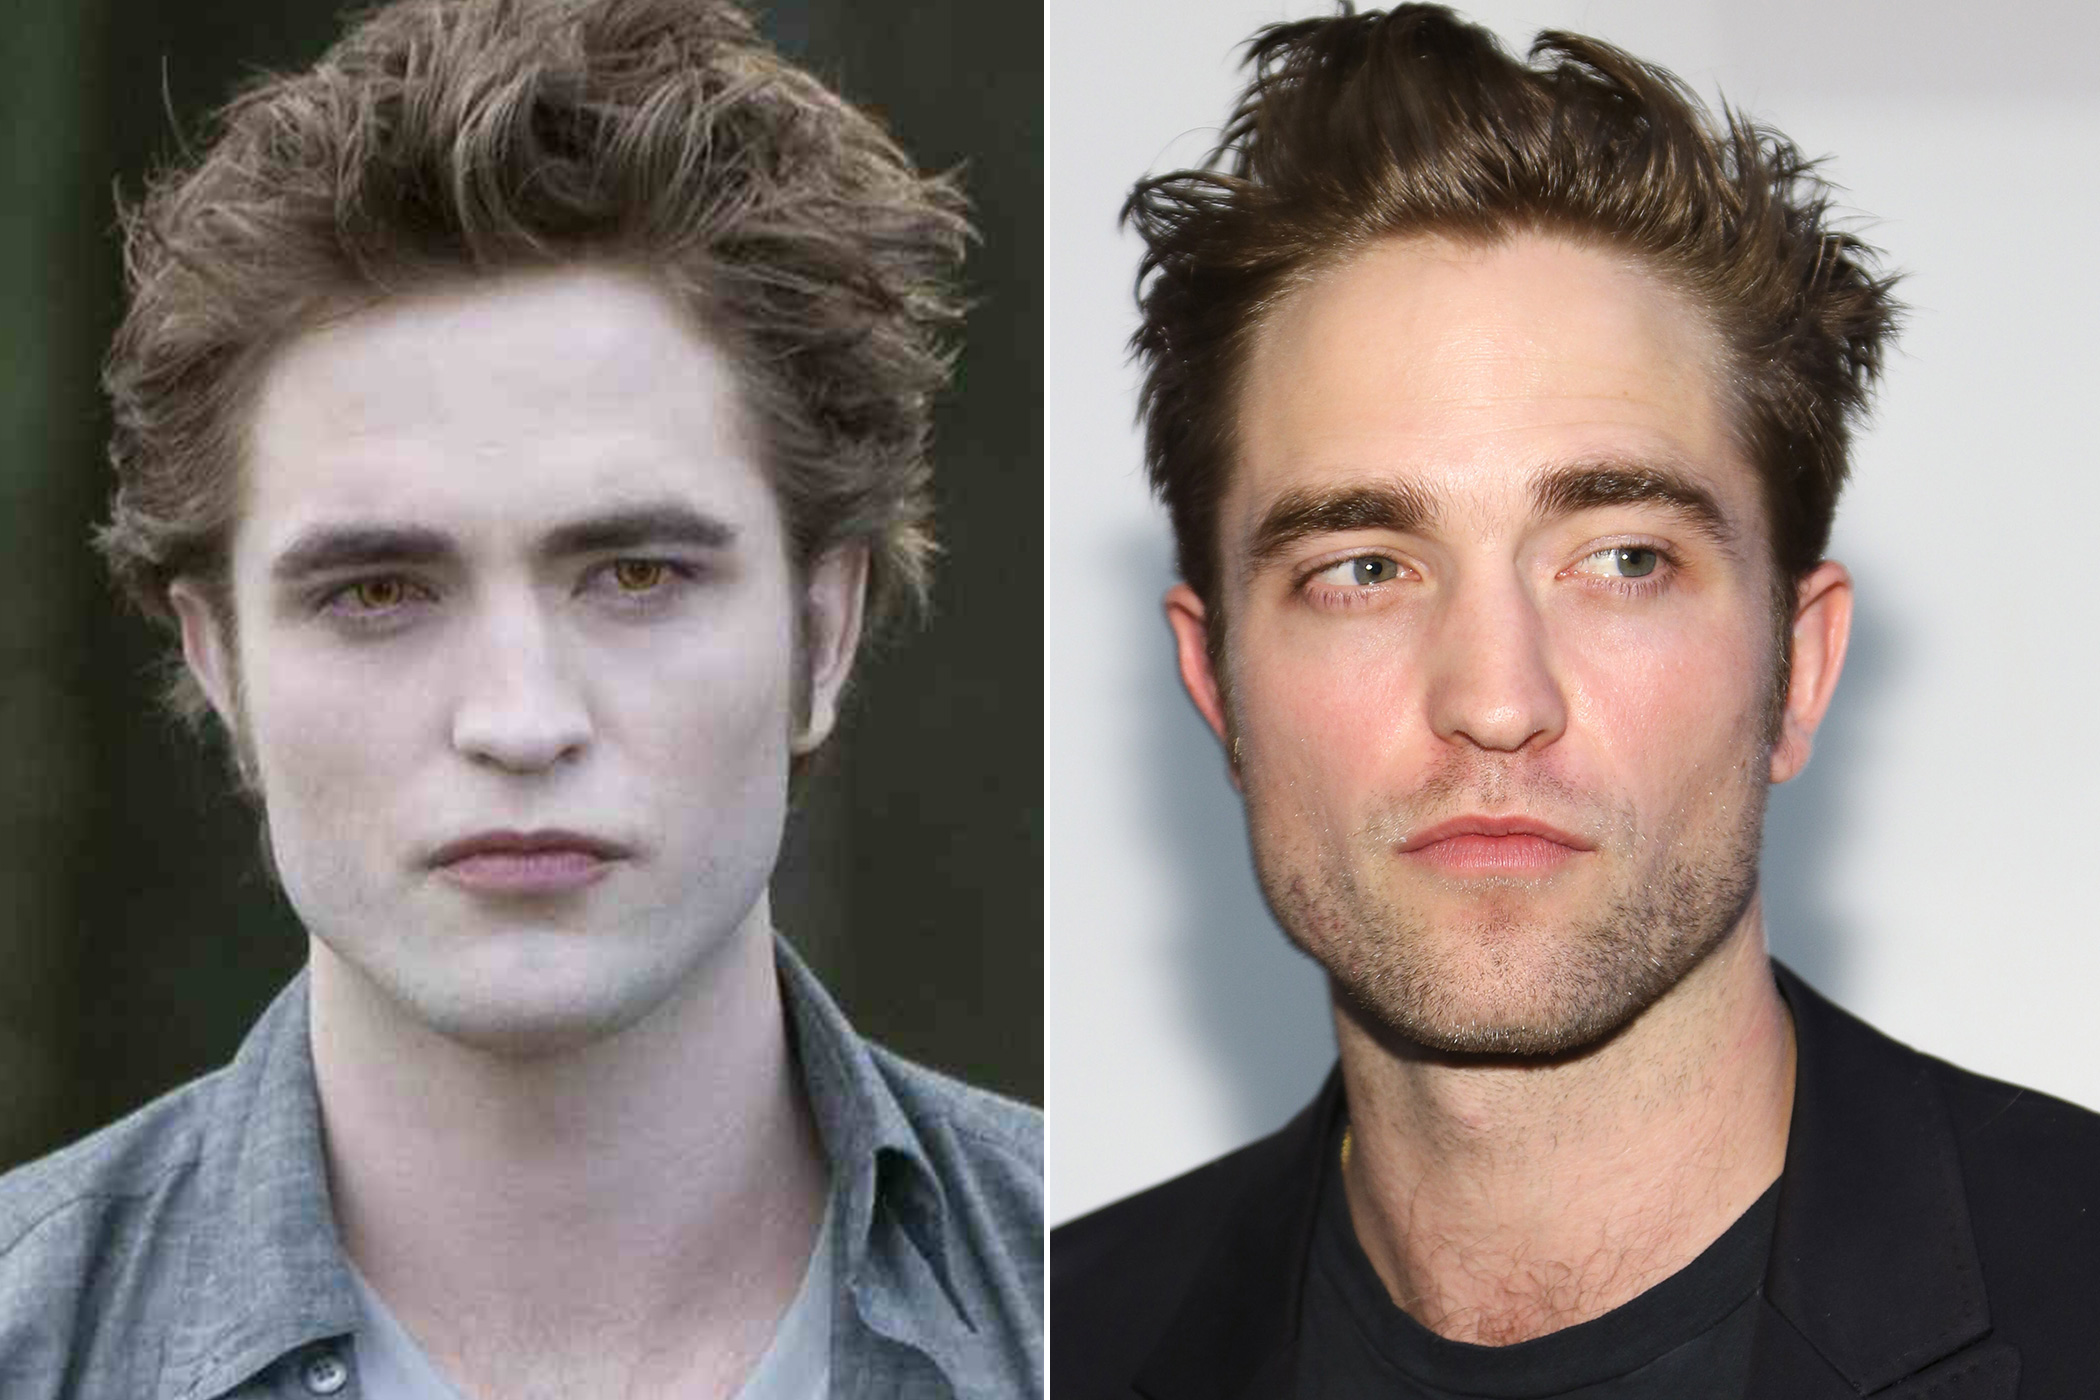 Left: Robert Pattinson as Edward Cullen in Twilight: The New Moon, 2009; Right: in 2015